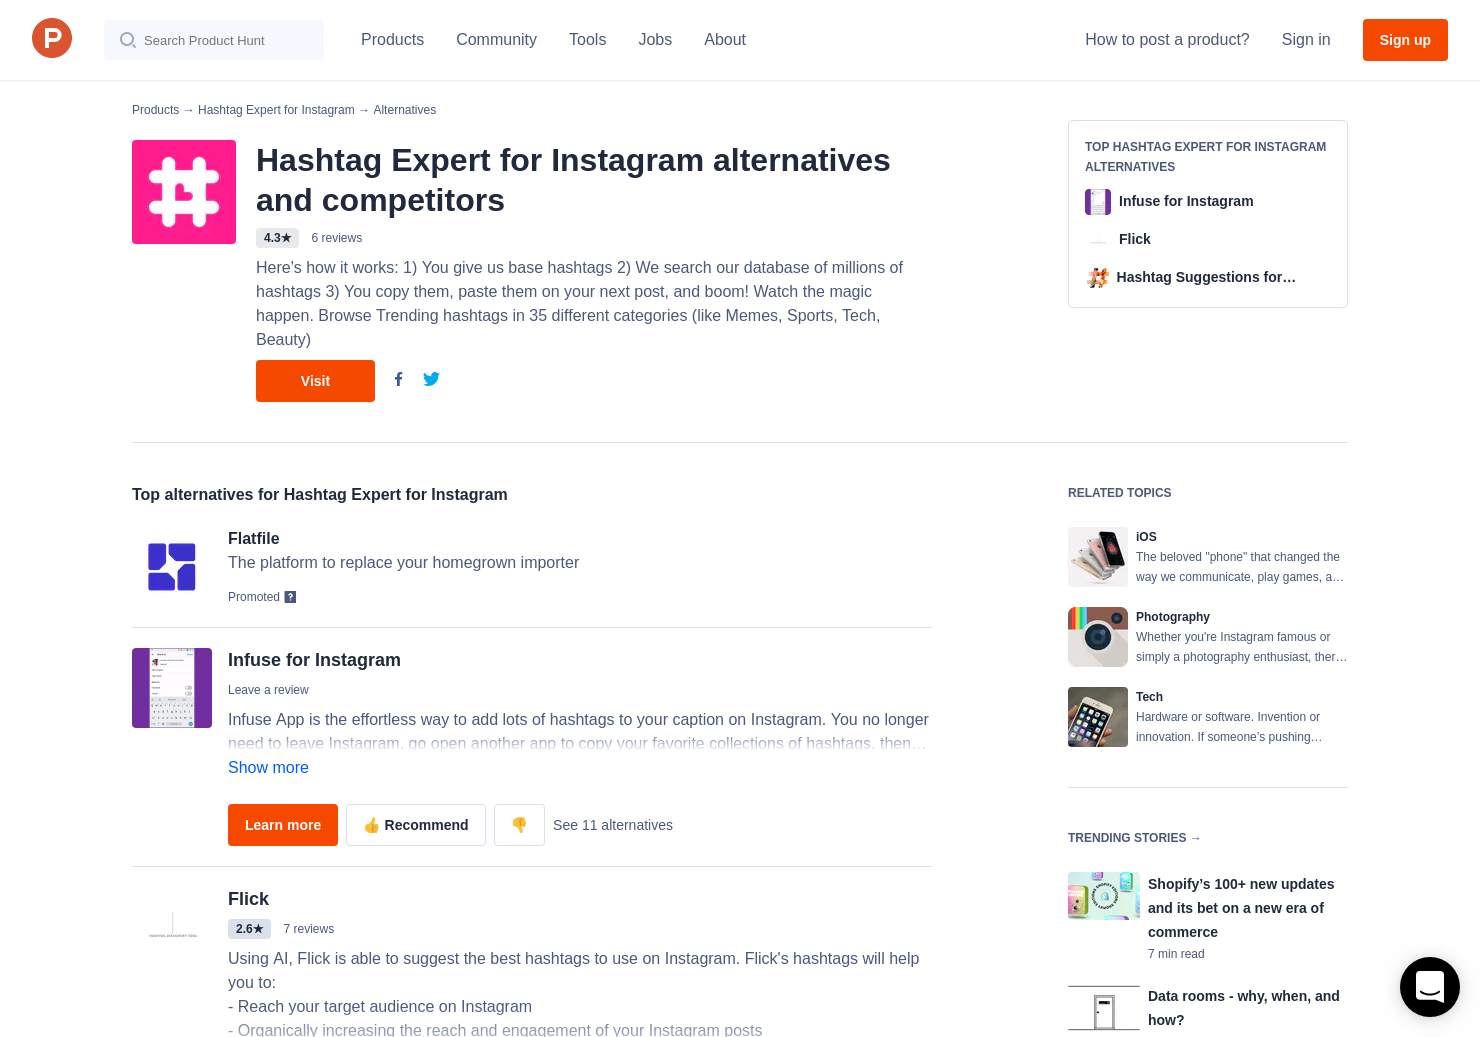 11 Alternatives to Hashtag Expert for Instagram for iPhone